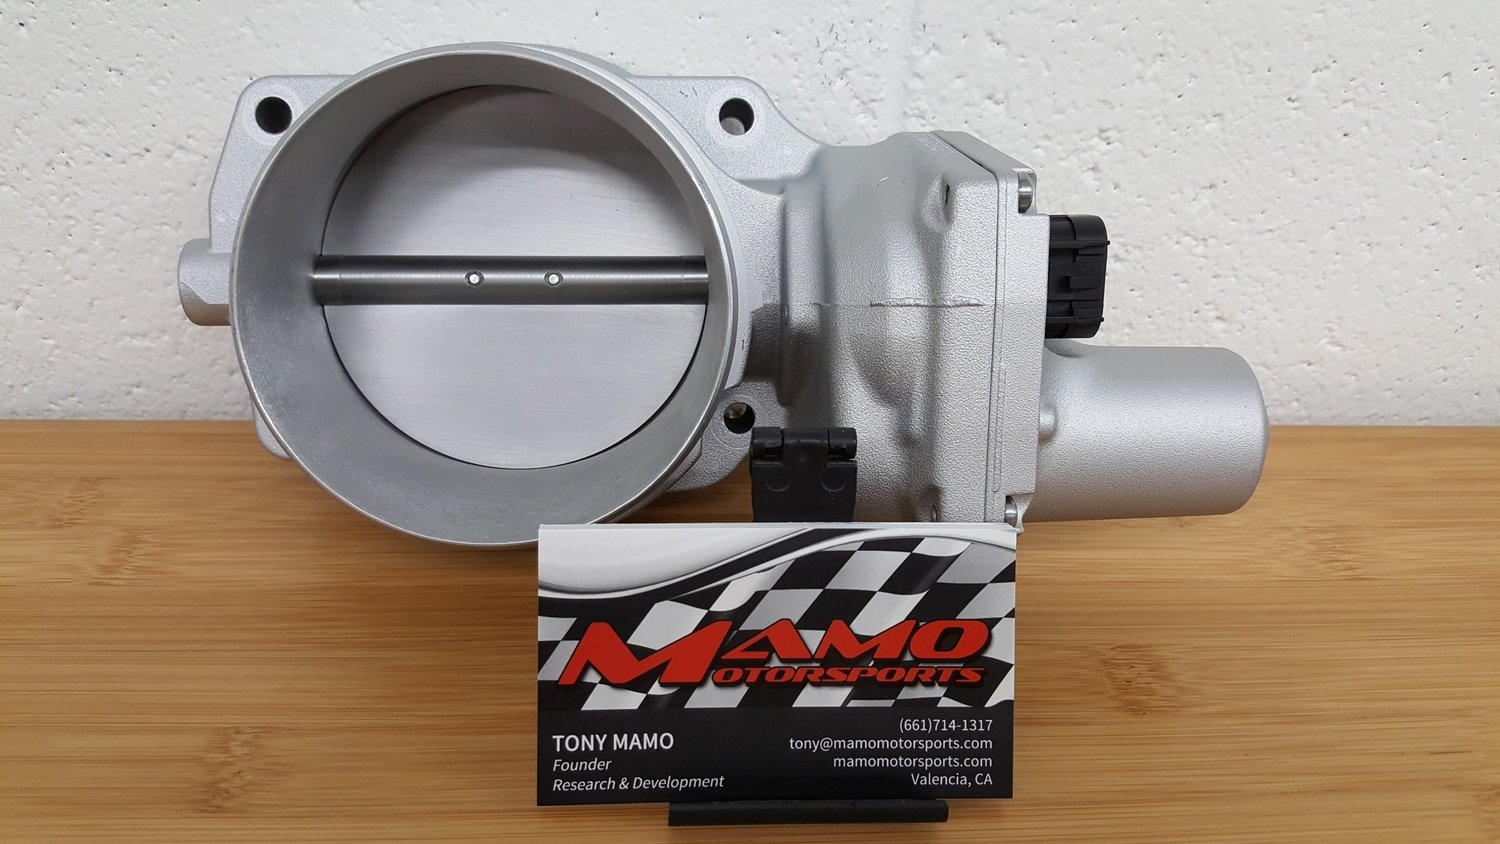 Throttle Body LS2 (Price includes a refundable $400 core exchange fee)